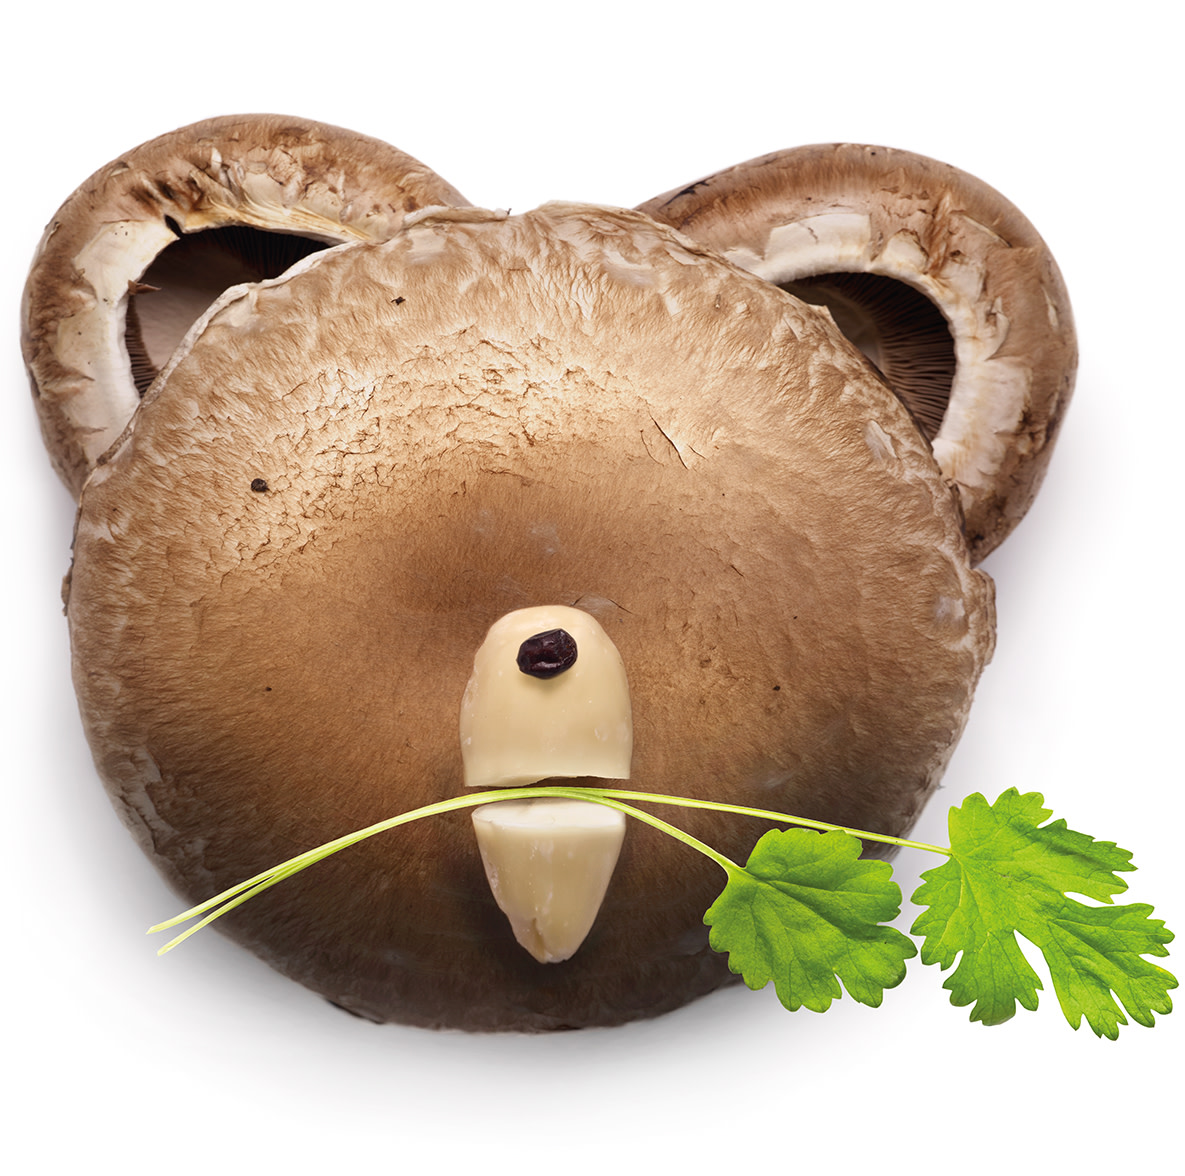 An image of a bear's face made out of mushrooms, with a piece of coriander in his mouth.